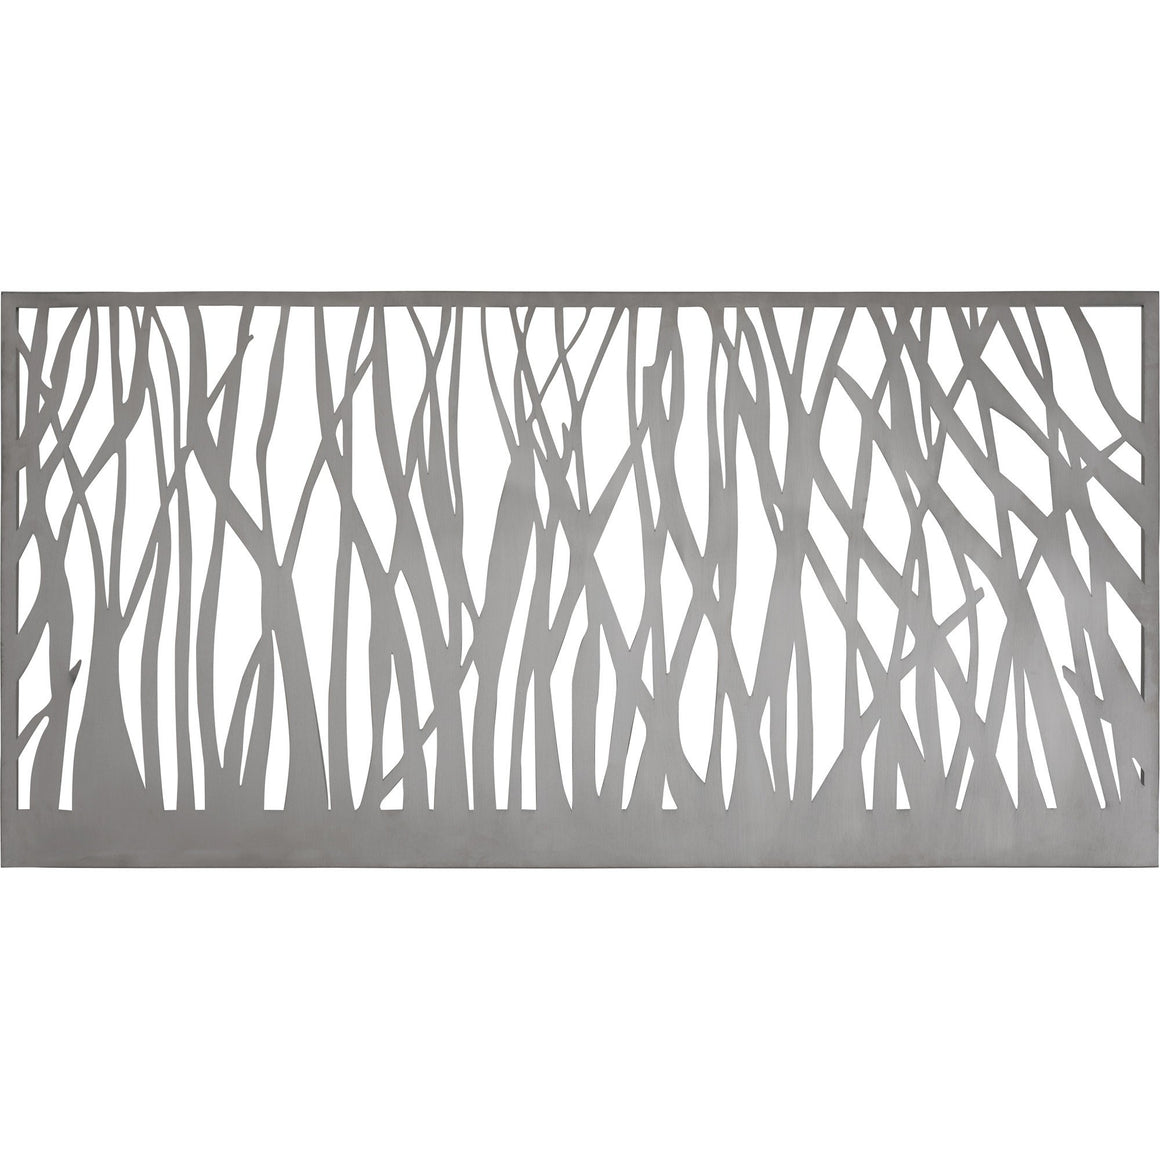 Roots Metal Wall Art